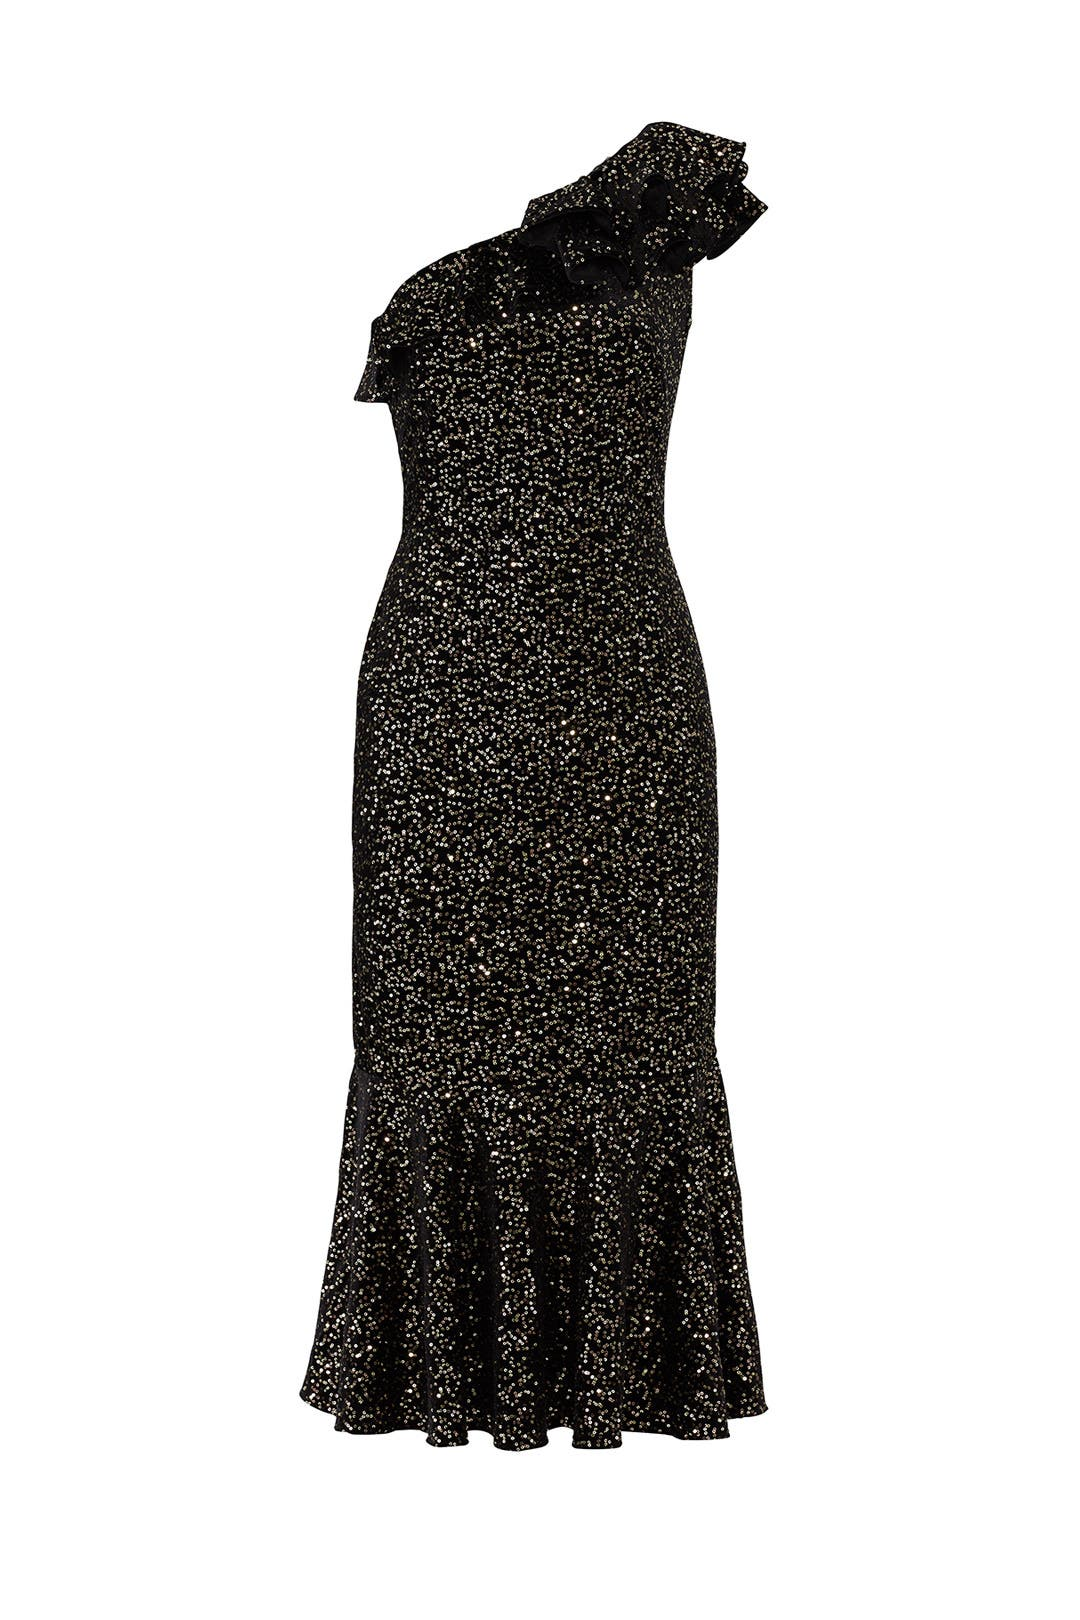 de09e6ecd7 Evadene Sequin Dress by Shoshanna for $90 | Rent the Runway